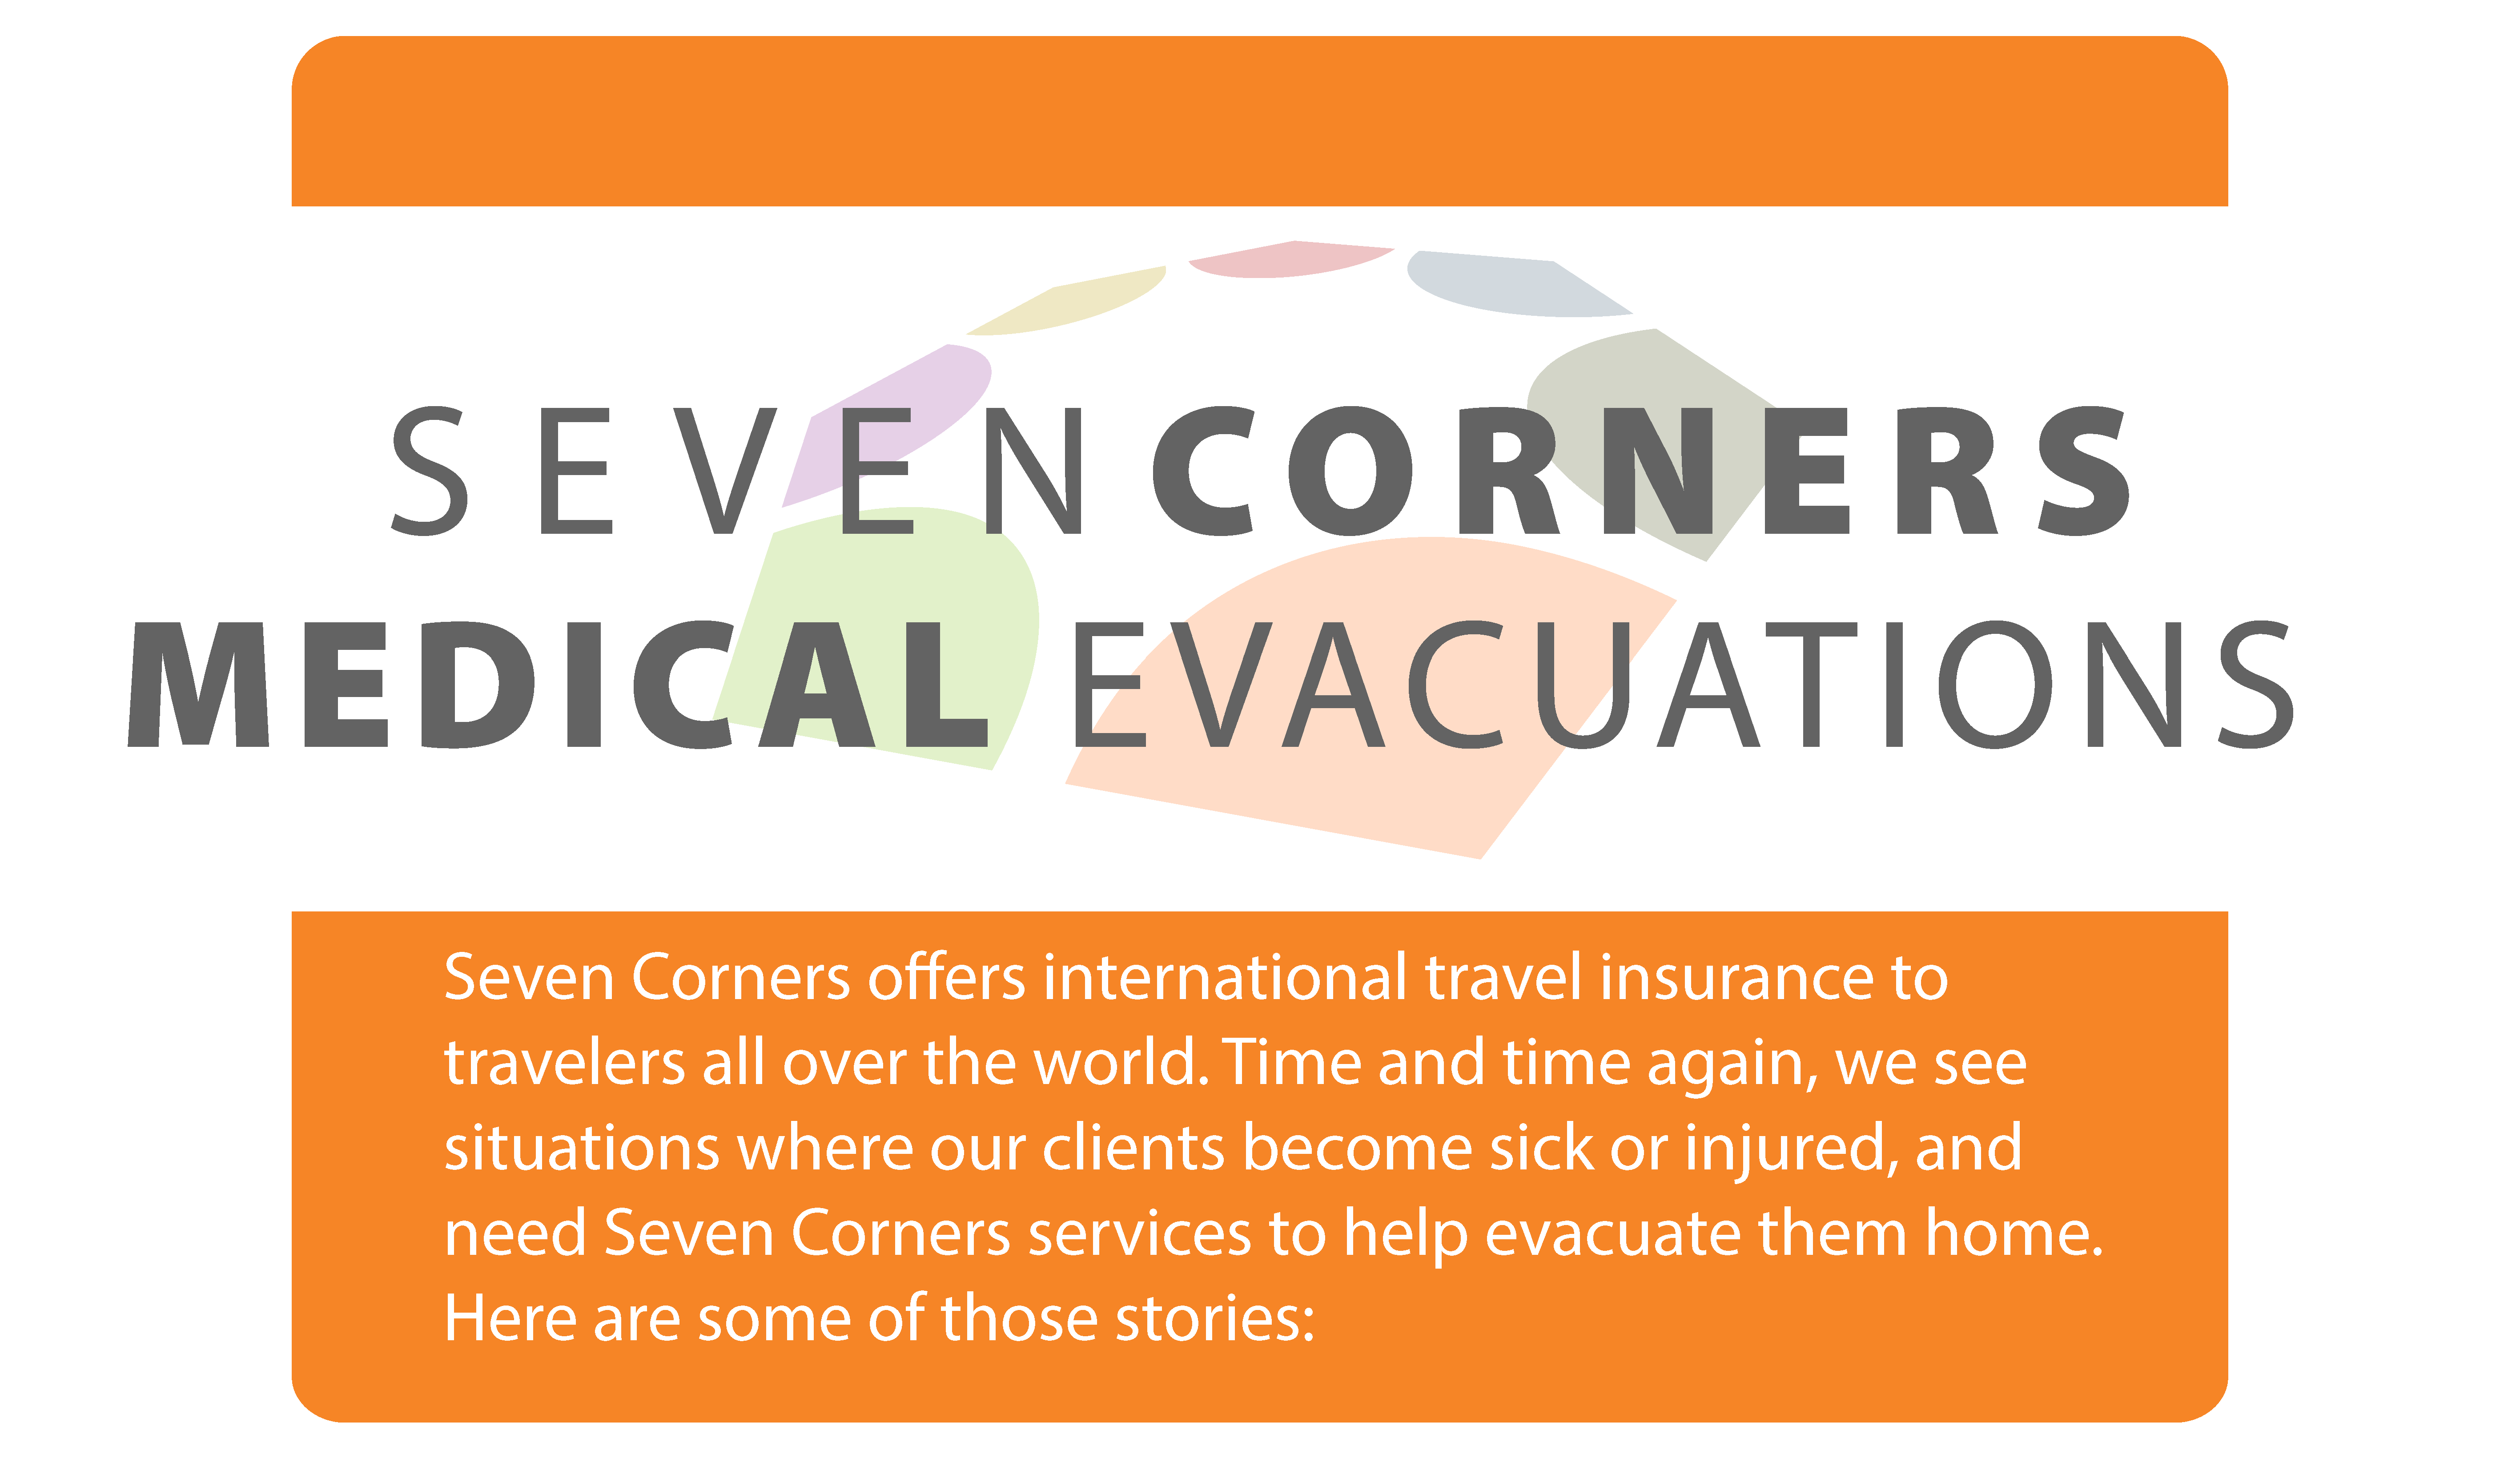 Seven Corners Medical Evacuations Infographic